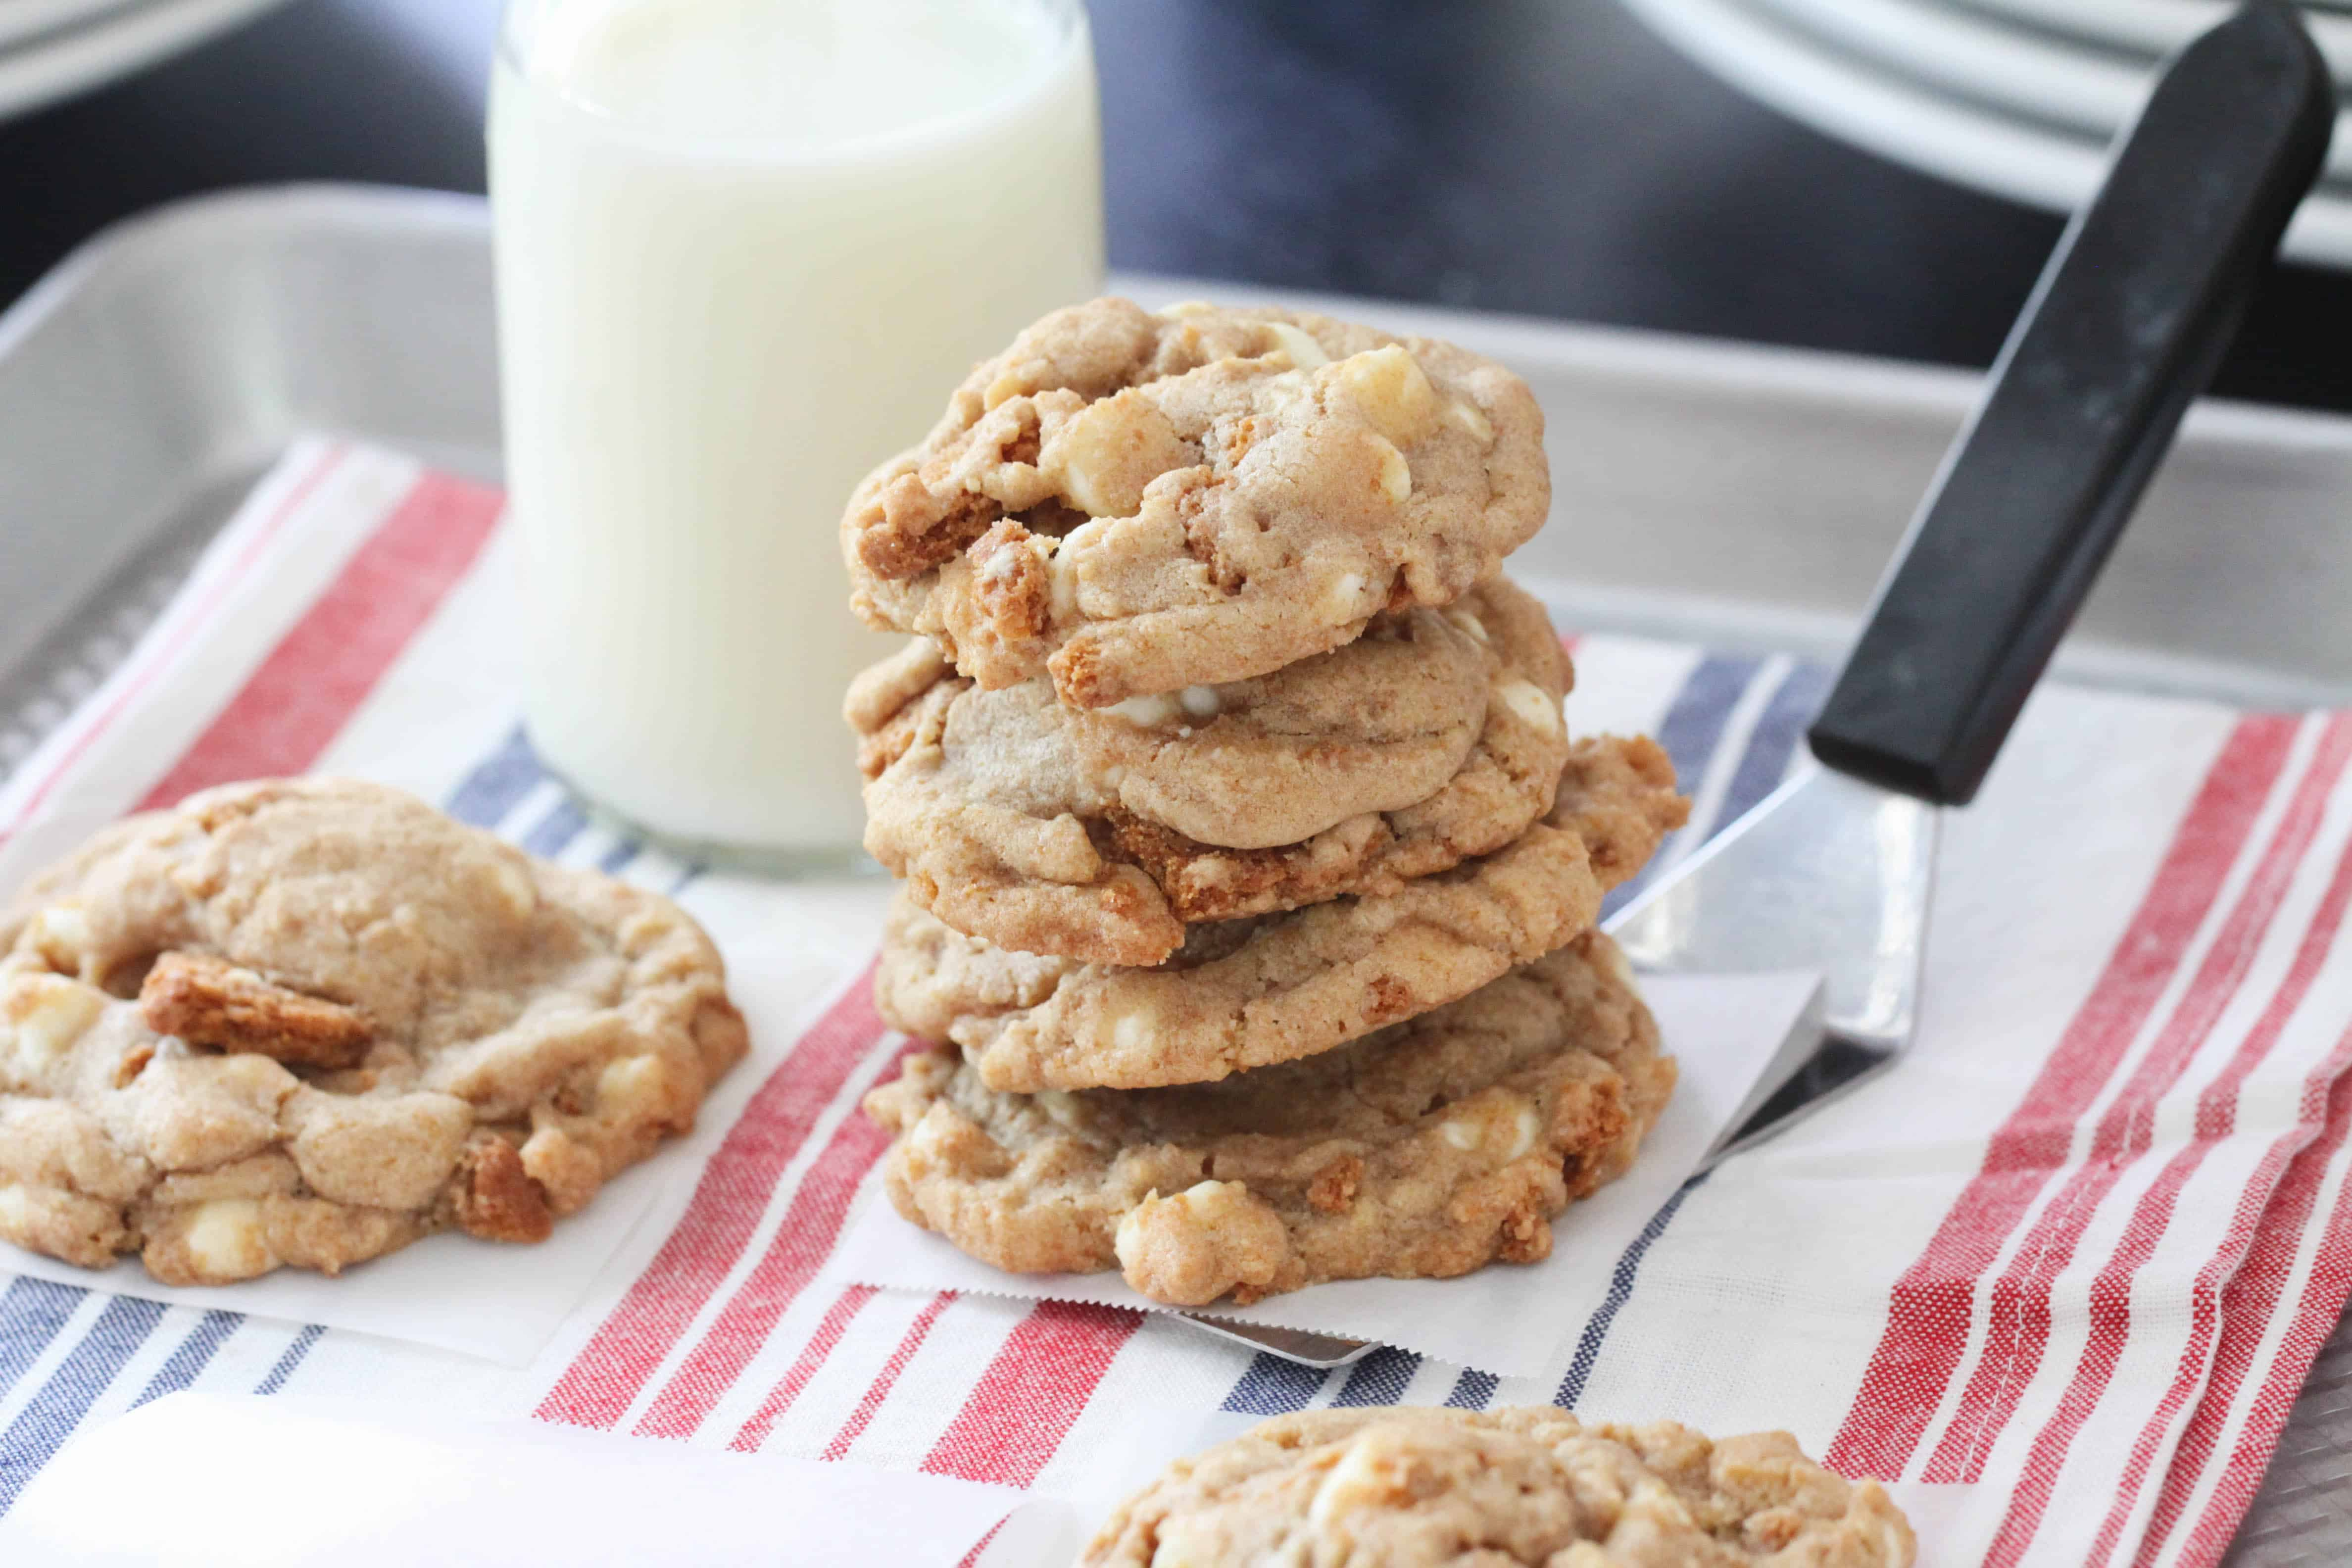 Image of Biscoff Crunch White Chocolate Chip Cookies